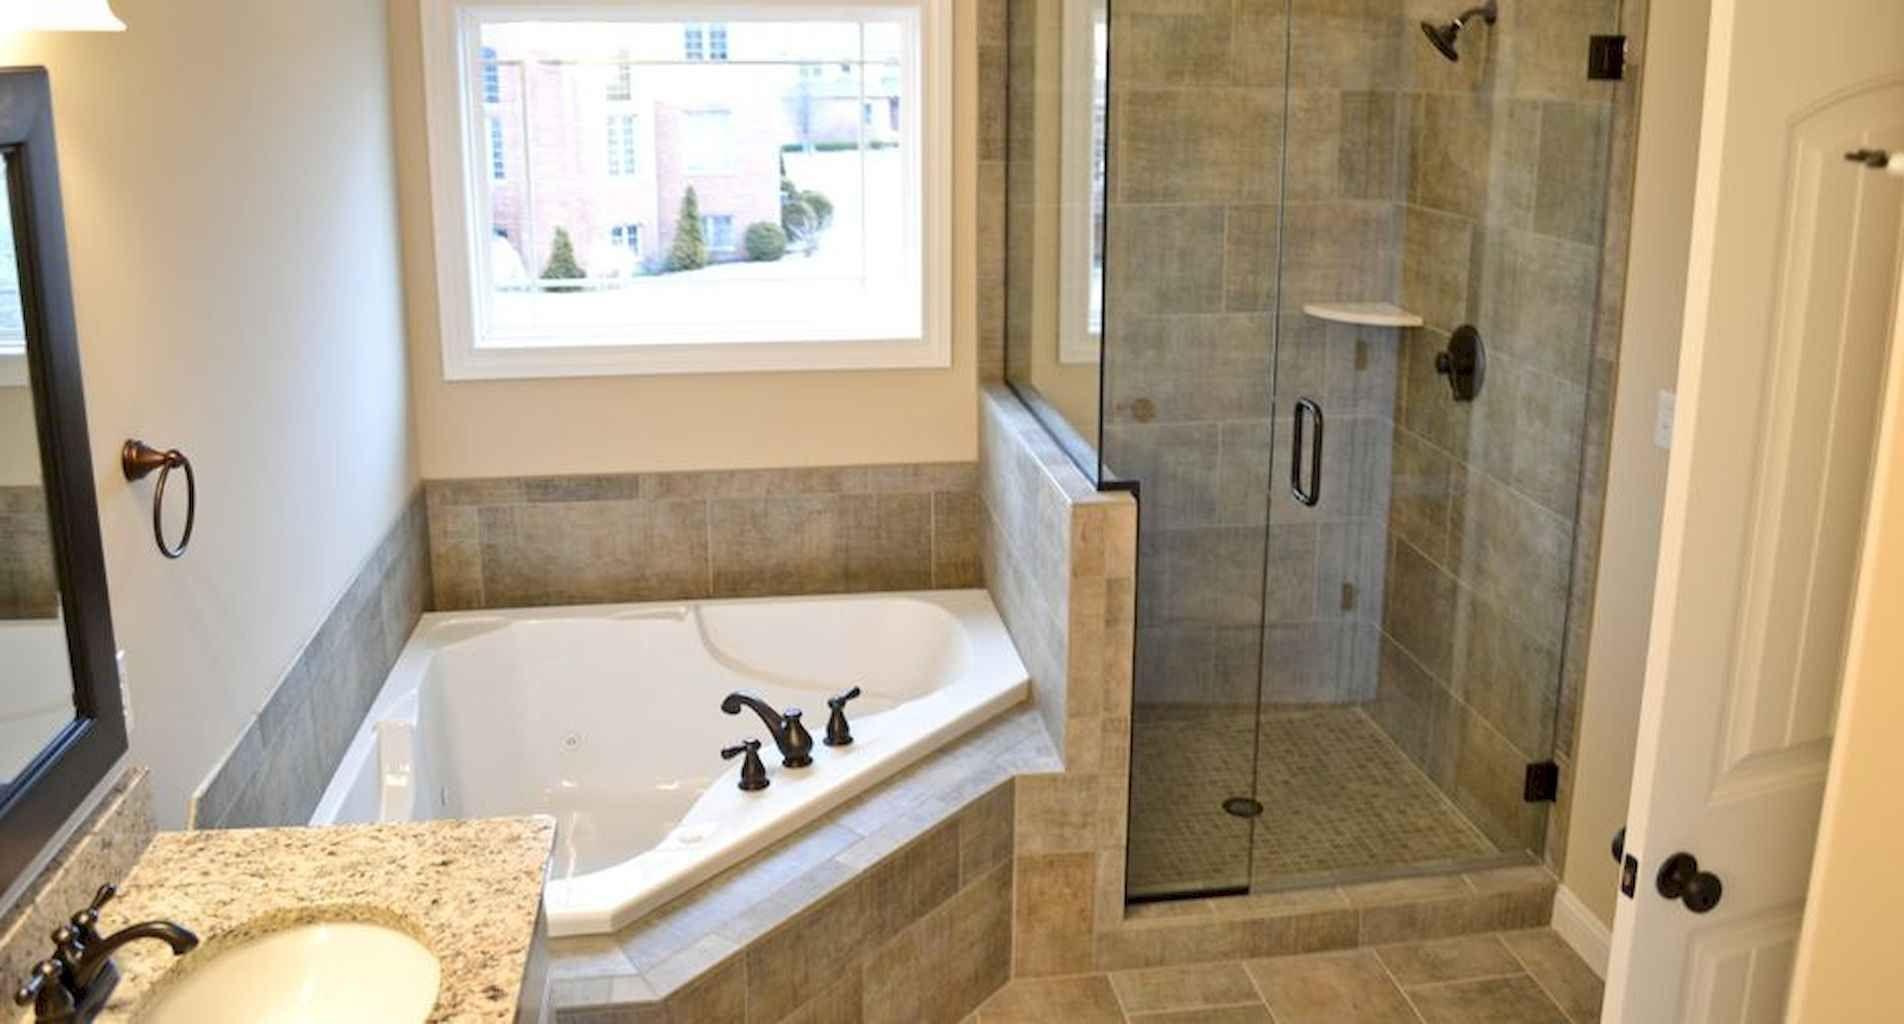 Cool 65 Small Master Bathroom Remodel Ideas On A Budget Https Domakeover Com 65 Small Master Bathroom Bathroom Floor Plans Small Master Bathroom Tub Remodel